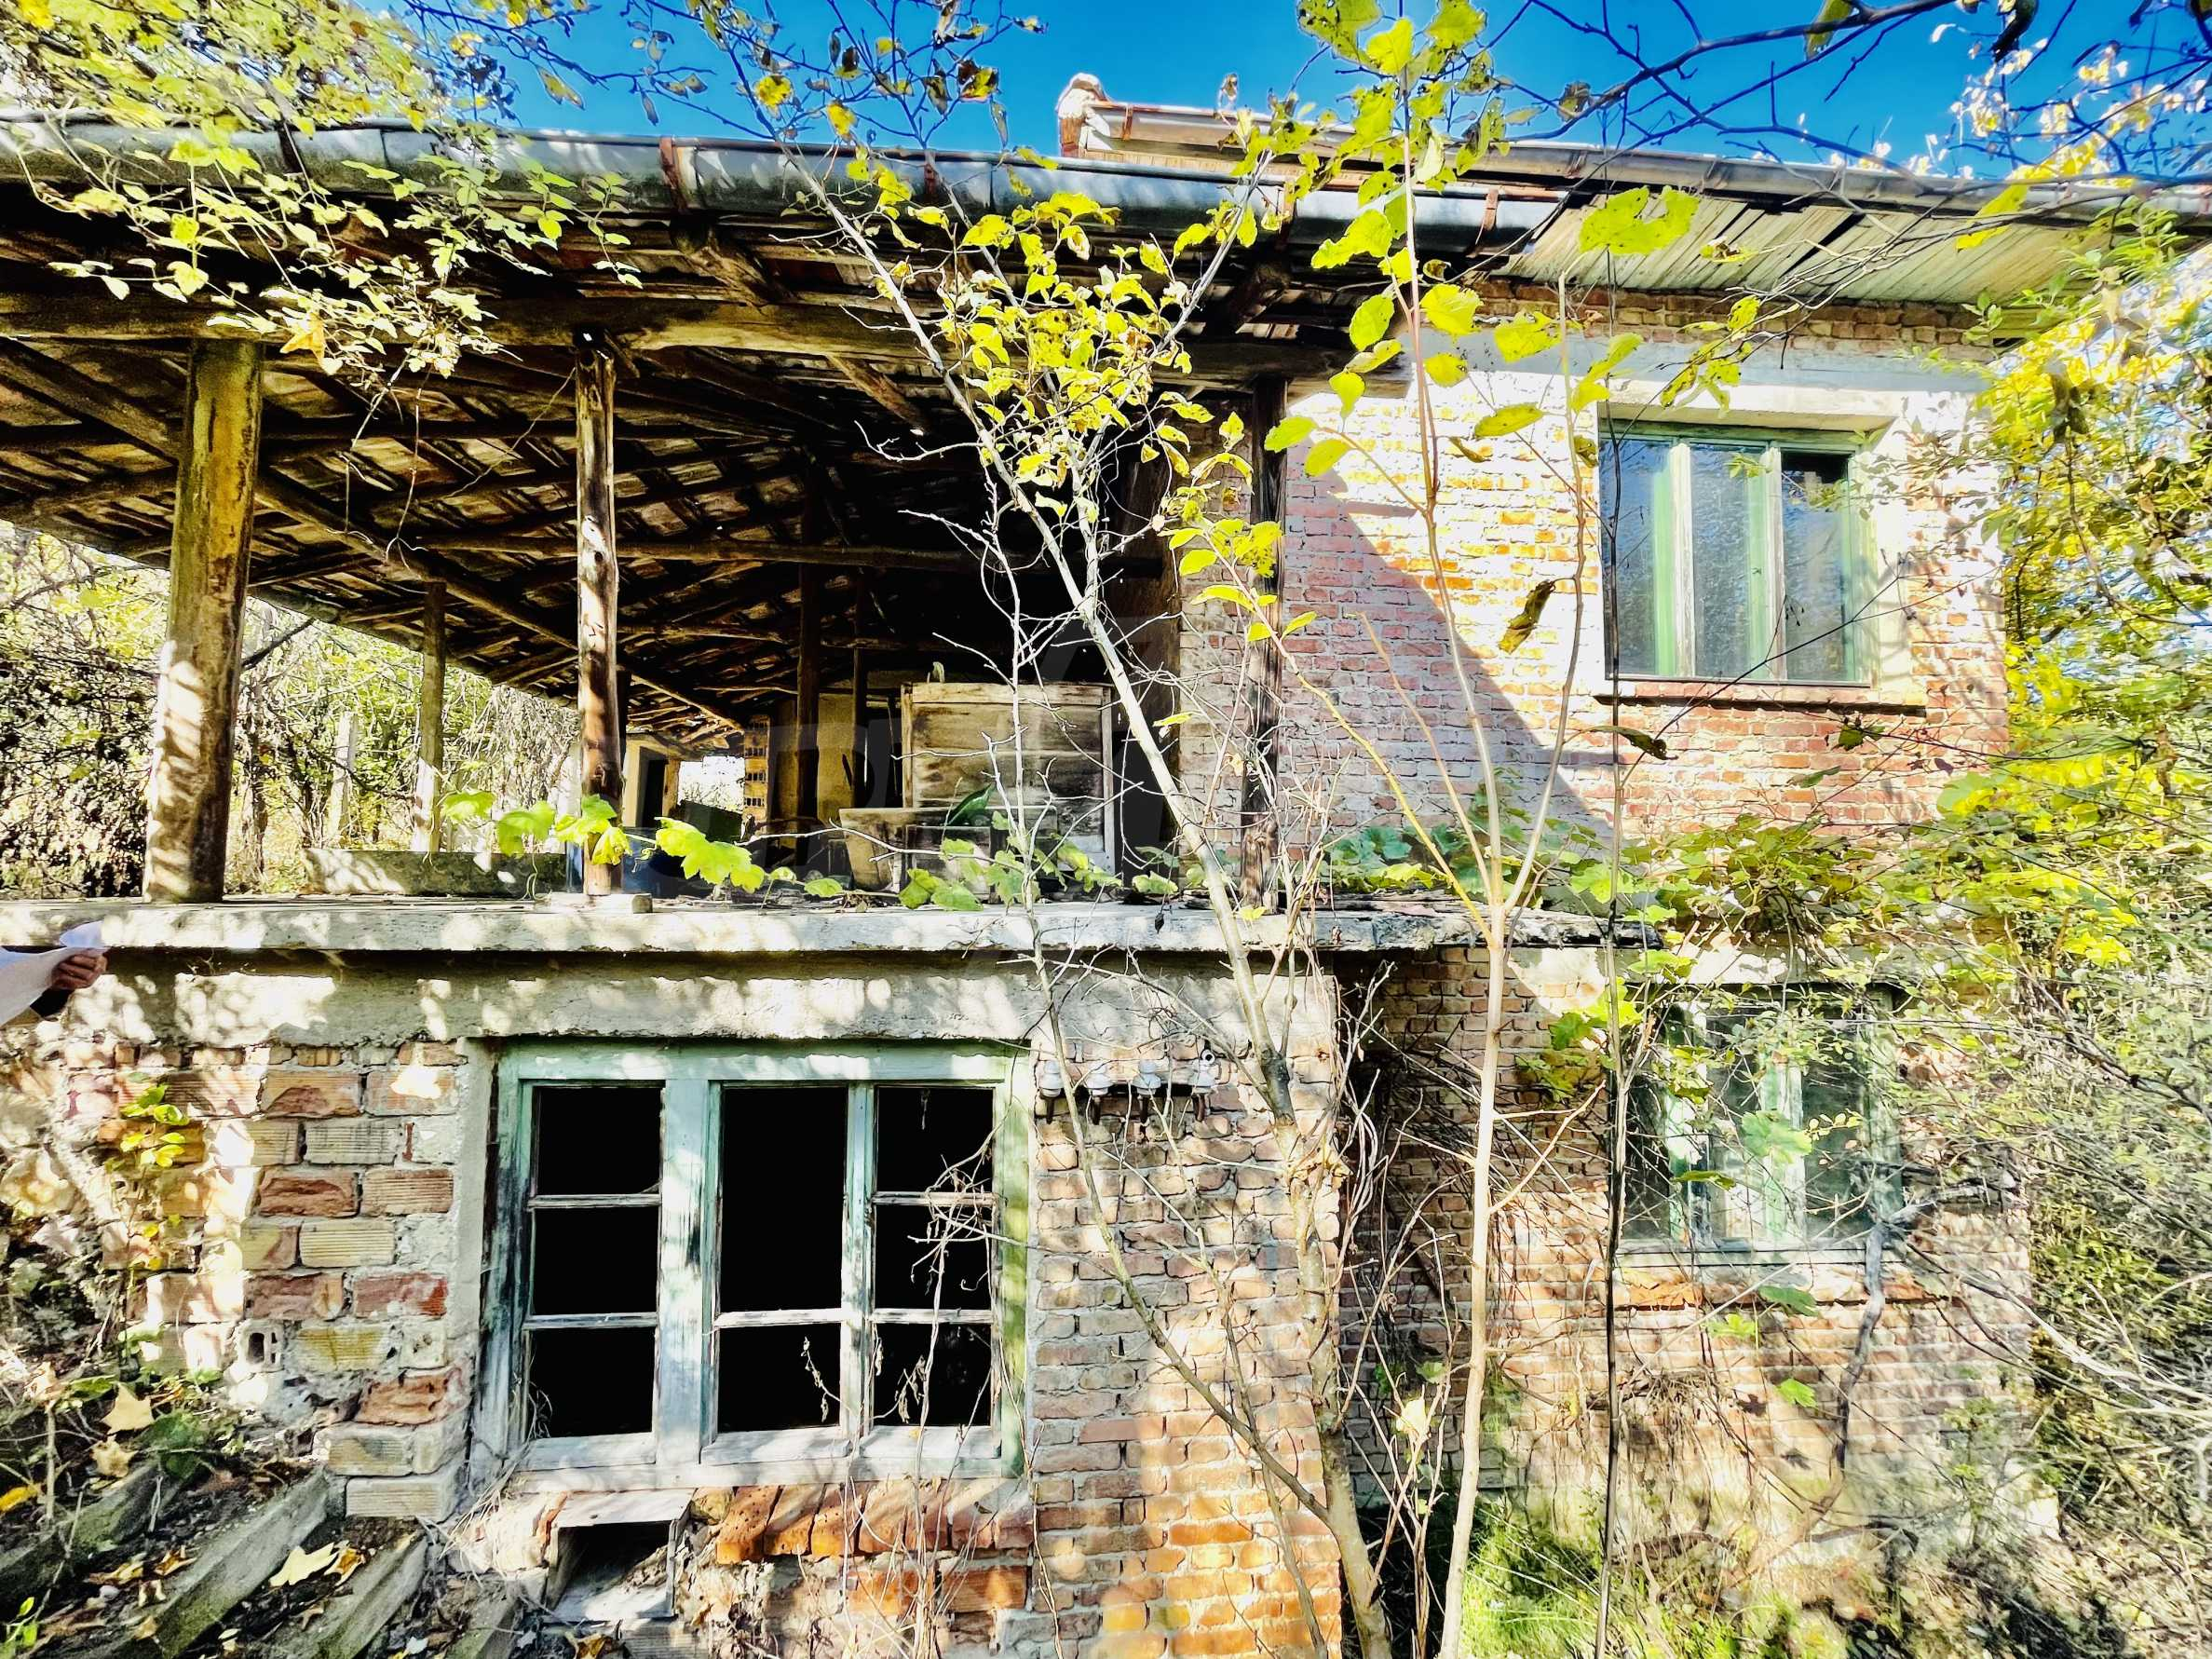 A house in a village with mineral springs and river 4